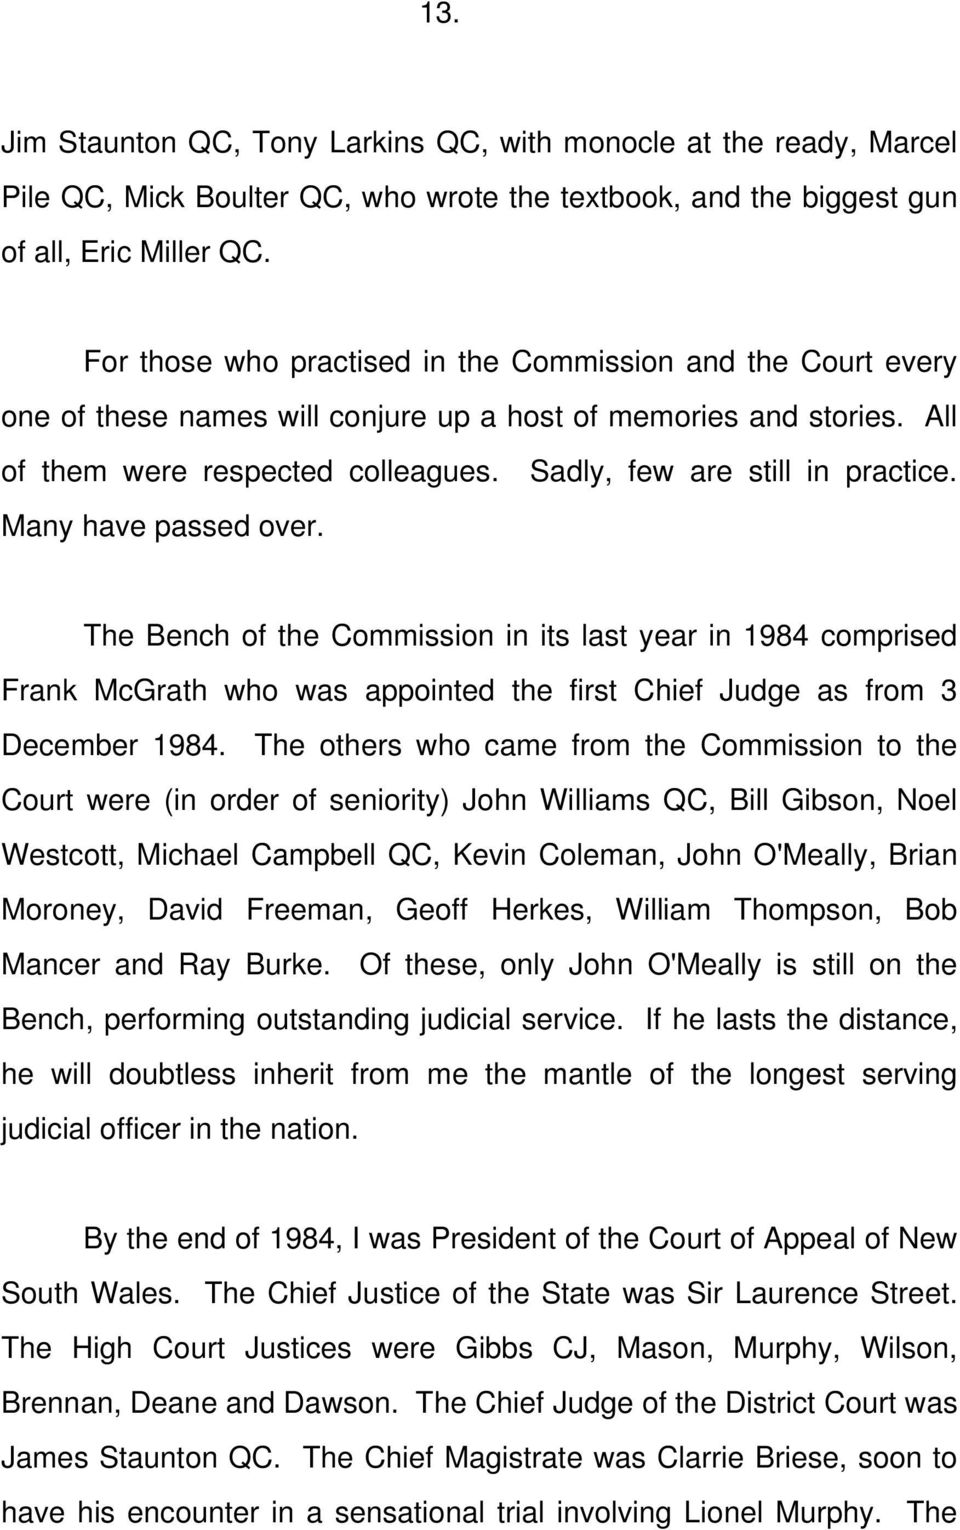 Sadly, few are still in practice. Many have passed over. The Bench of the Commission in its last year in 1984 comprised Frank McGrath who was appointed the first Chief Judge as from 3 December 1984.